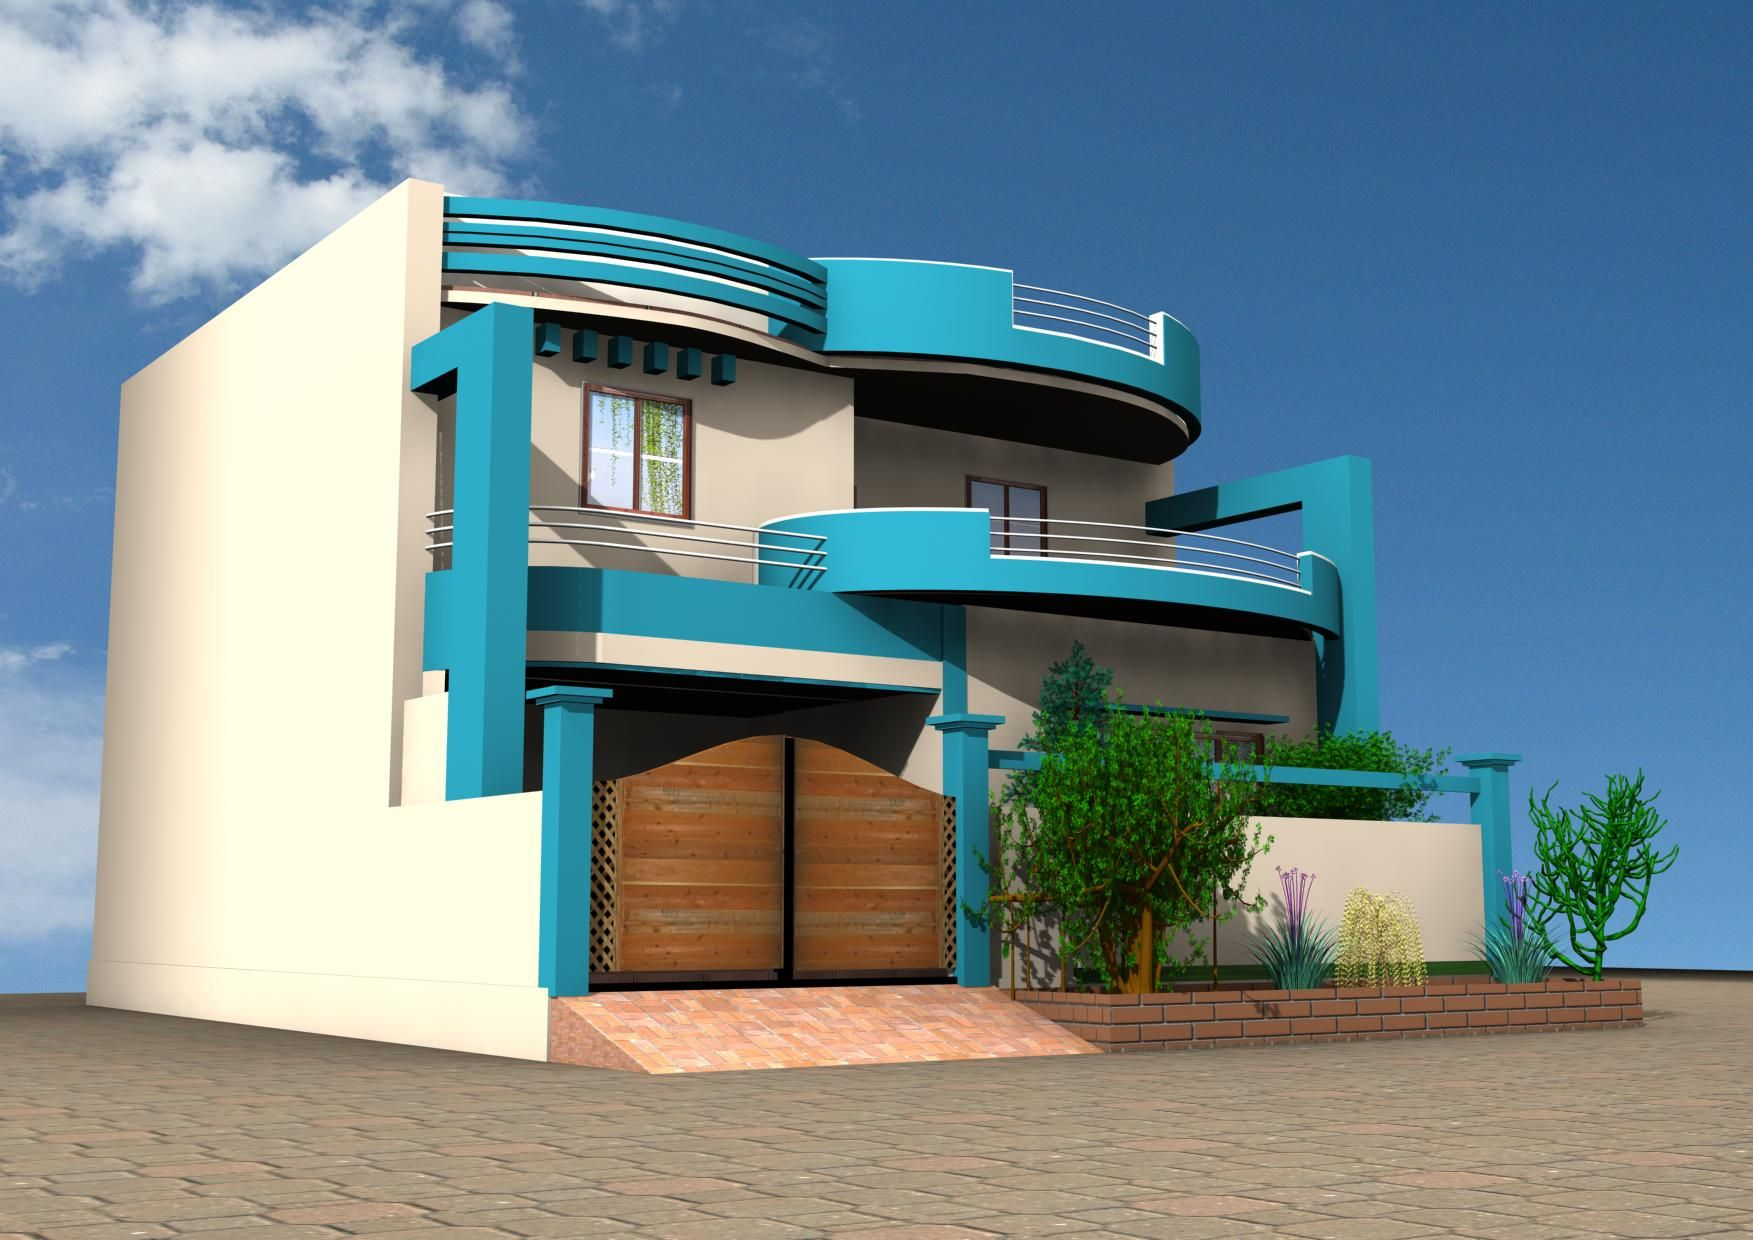 3d home design images hd 1080p for Latest architectural design